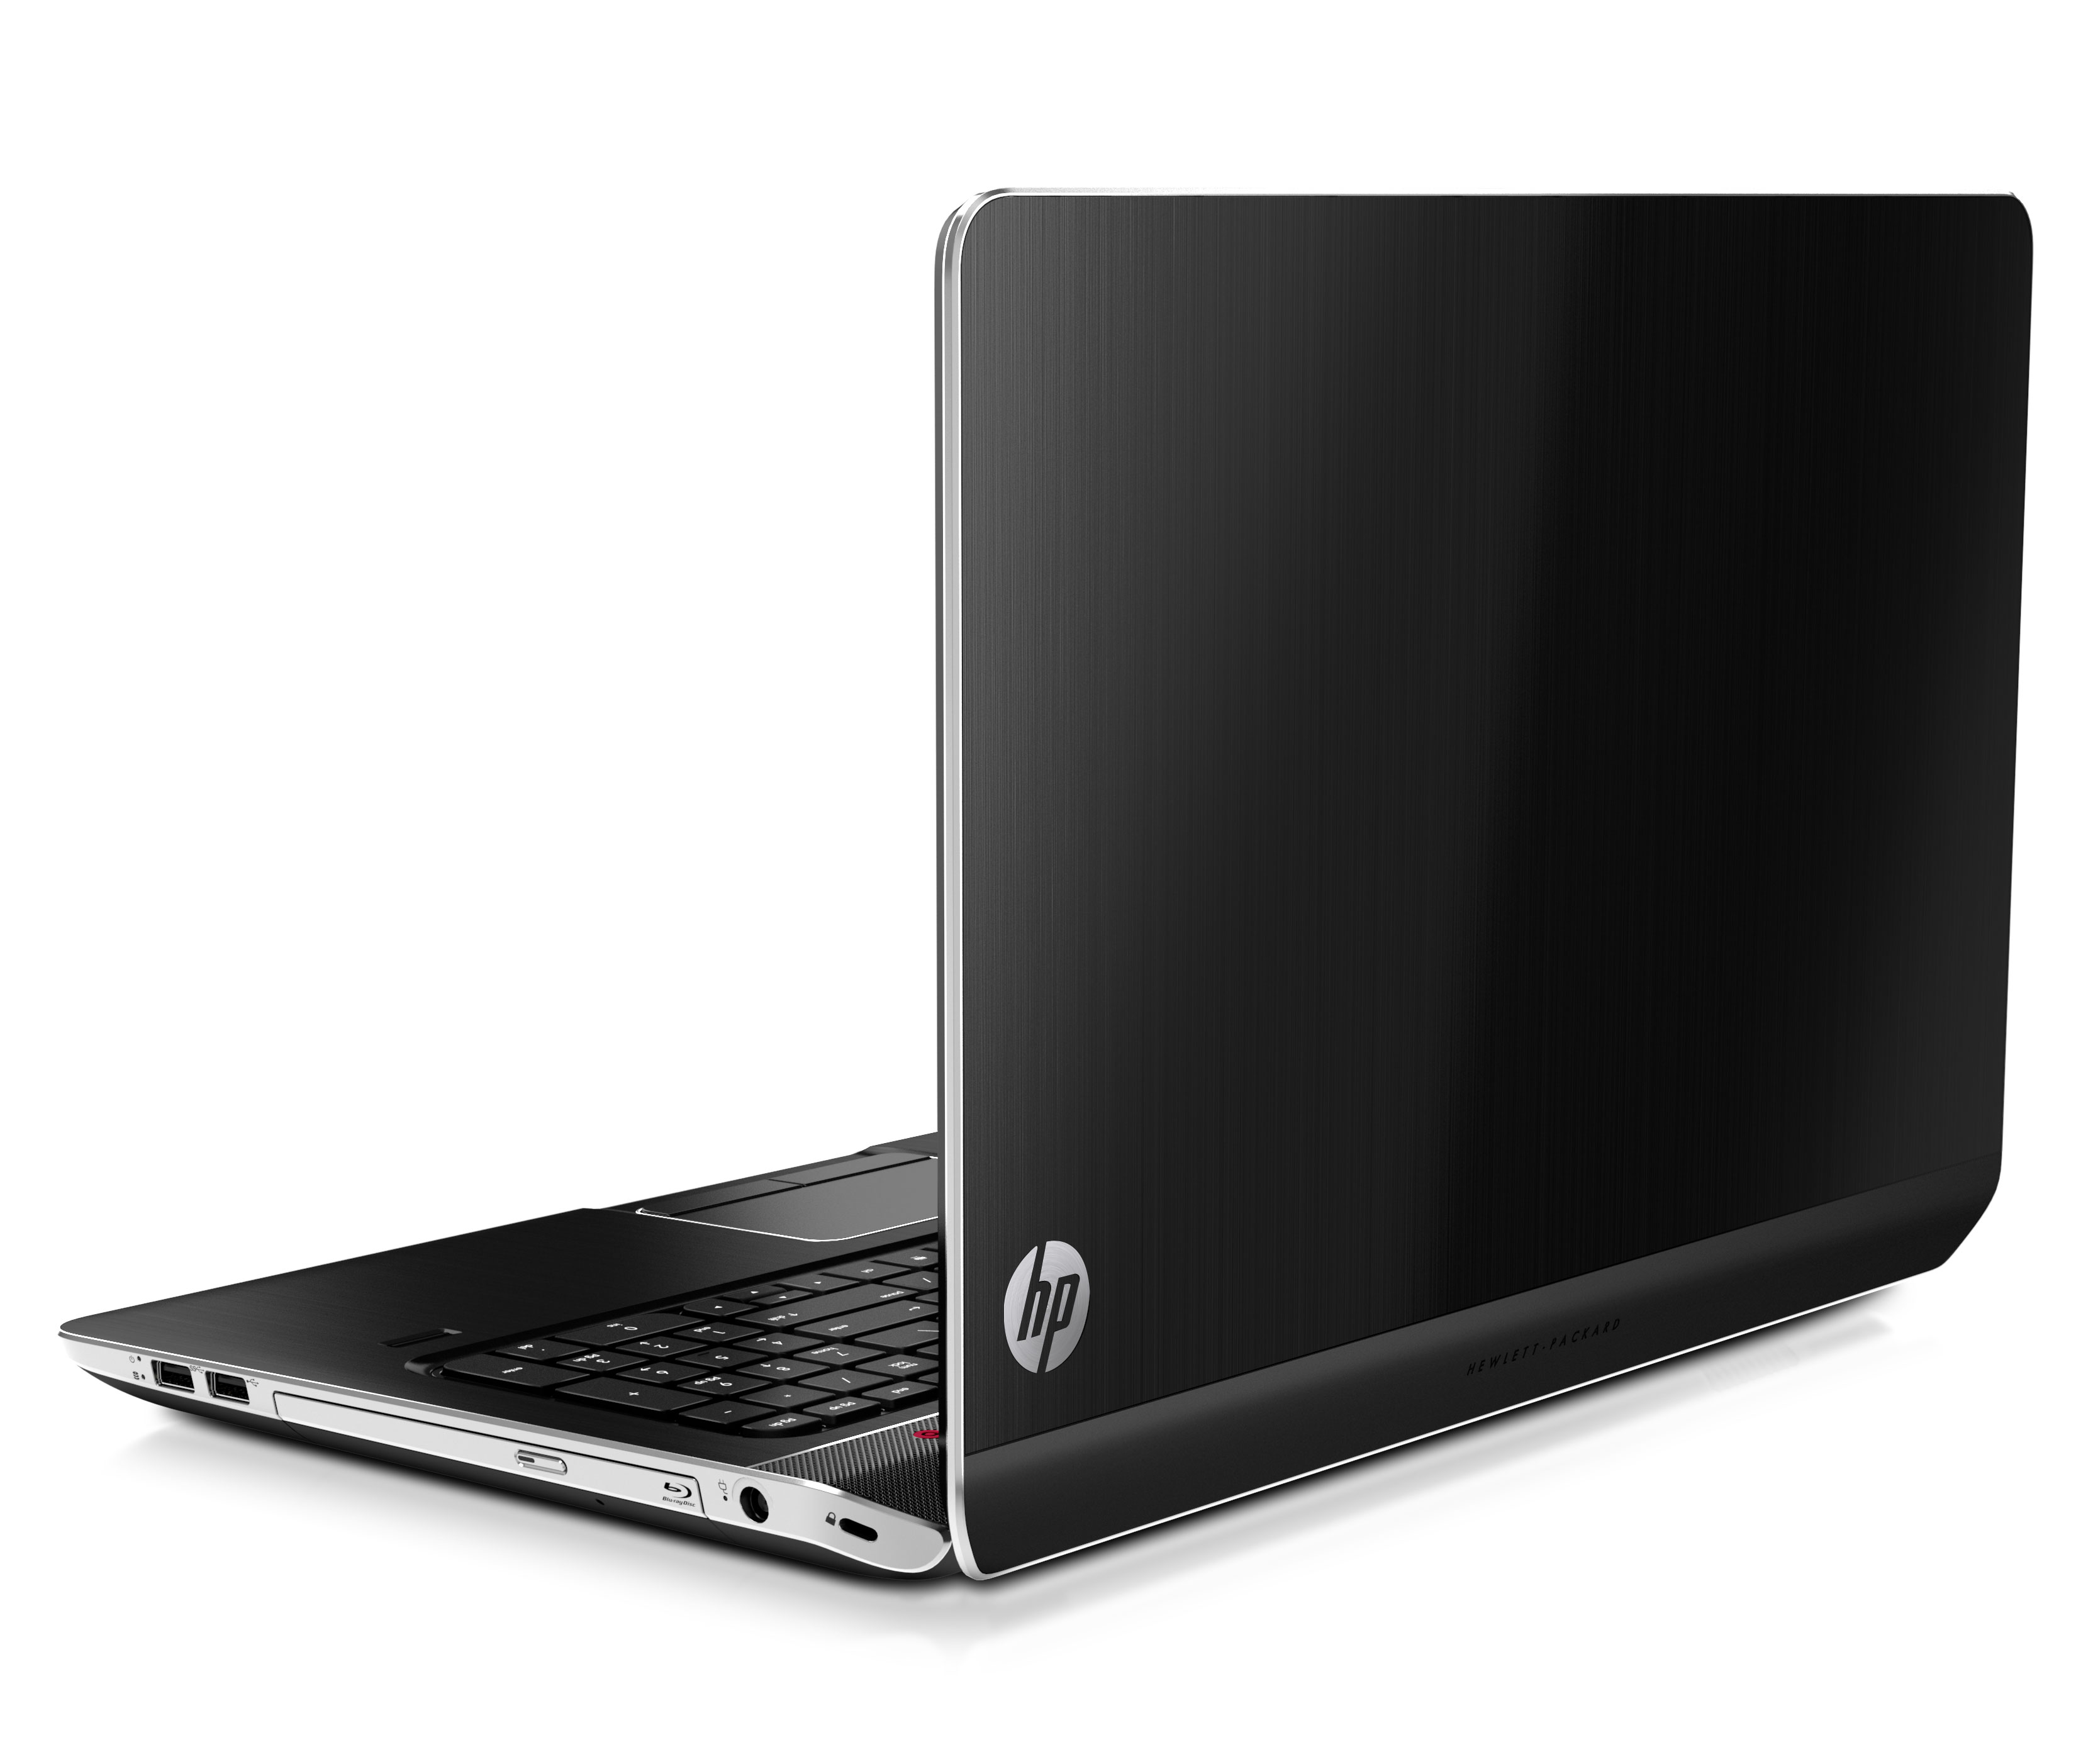 hp pavilion dv7 7050ea 17 3 inch laptop intel core i3. Black Bedroom Furniture Sets. Home Design Ideas